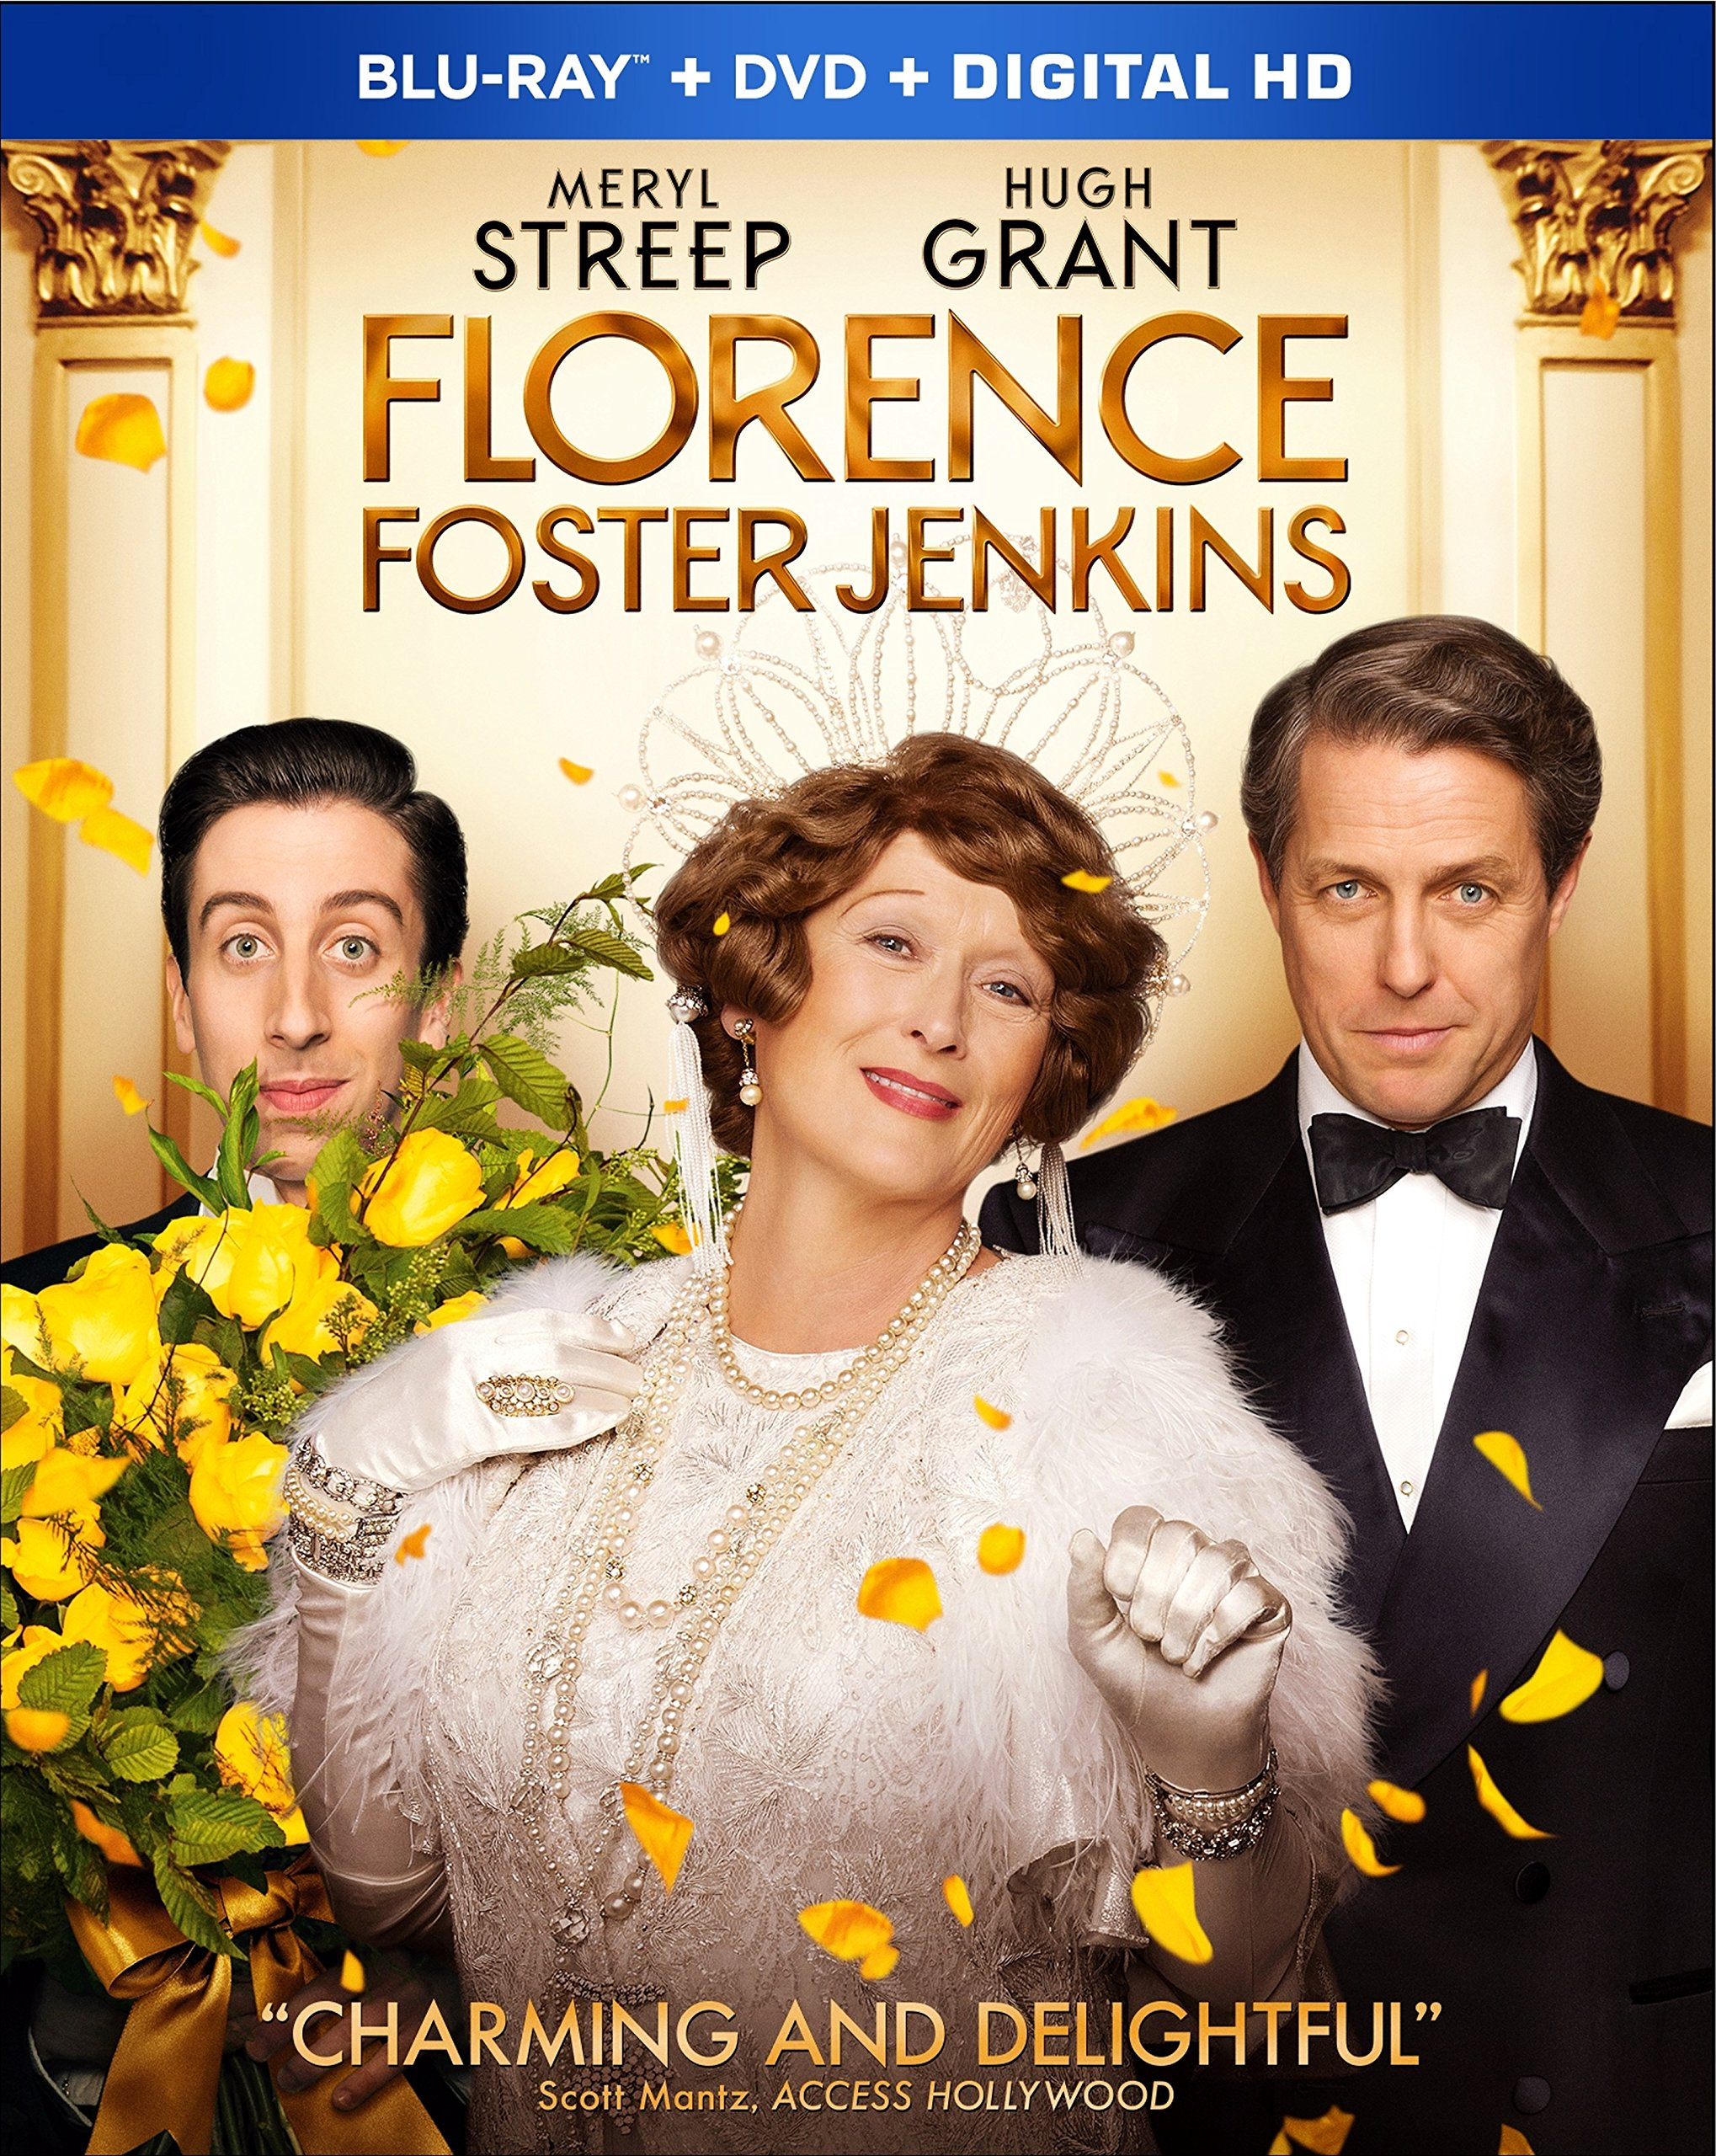 Blu-ray : Florence Foster Jenkins (With DVD, Digitally Mastered in HD, Widescreen, Dolby, AC-3)